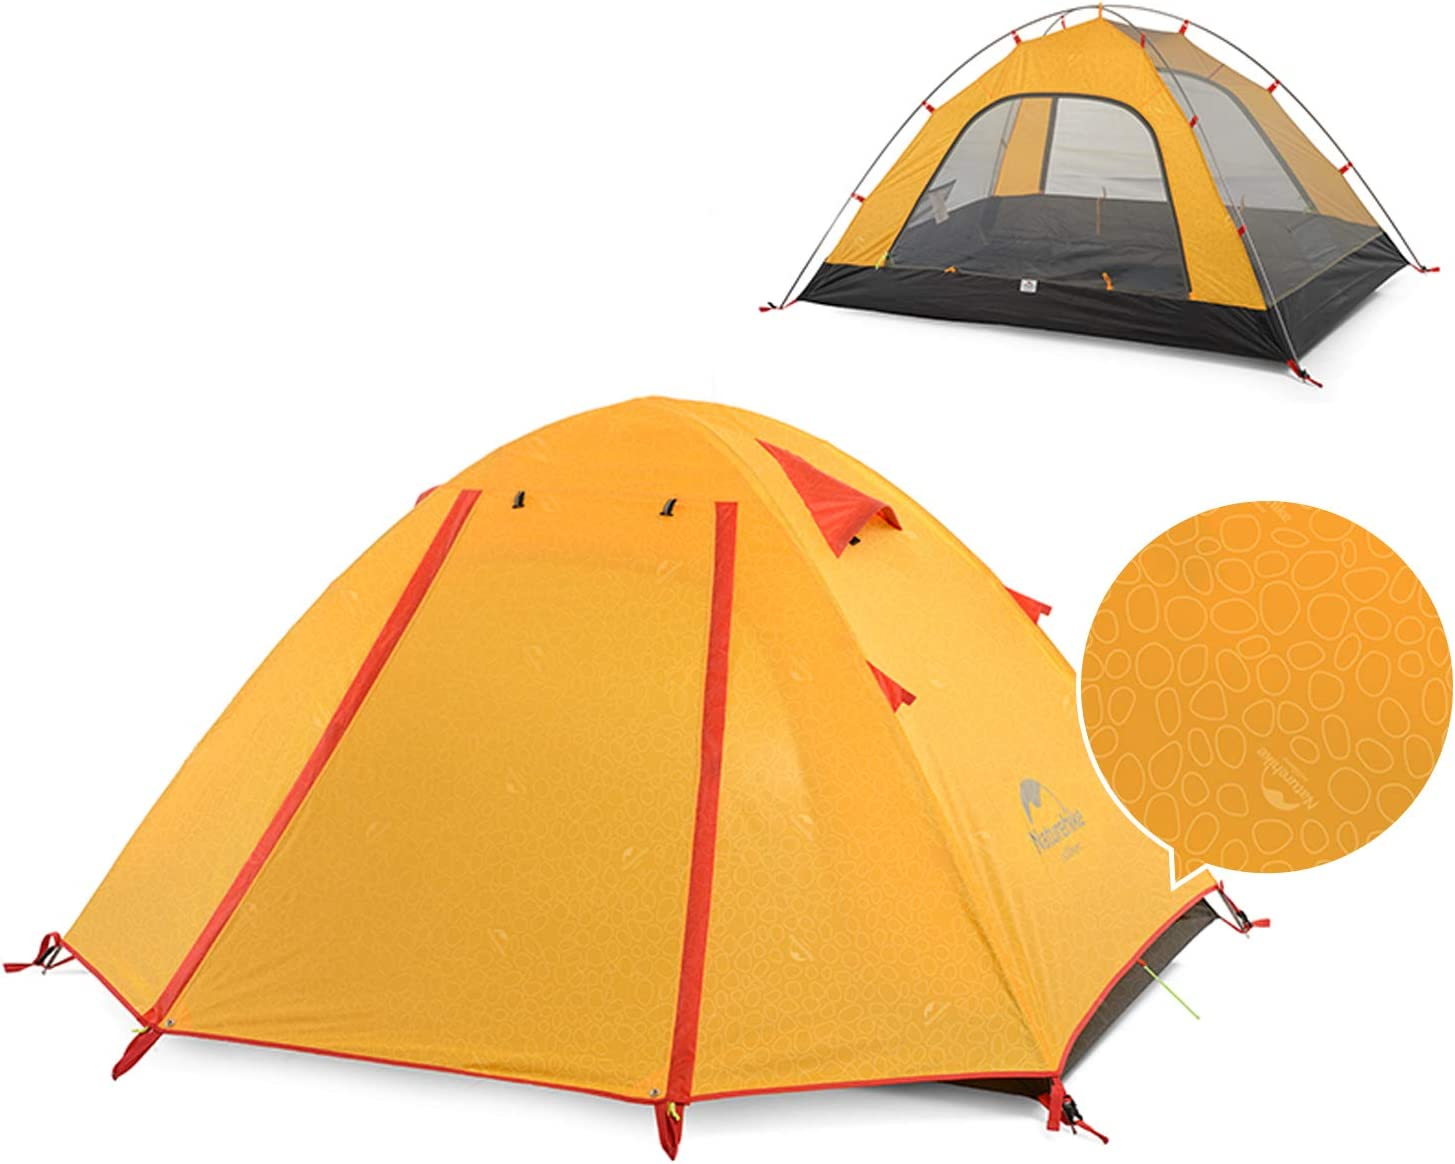 Naturehike Lightweight Backpacking Tent 1 2 Season Person [Alternative dealer] Animer and price revision 4 3